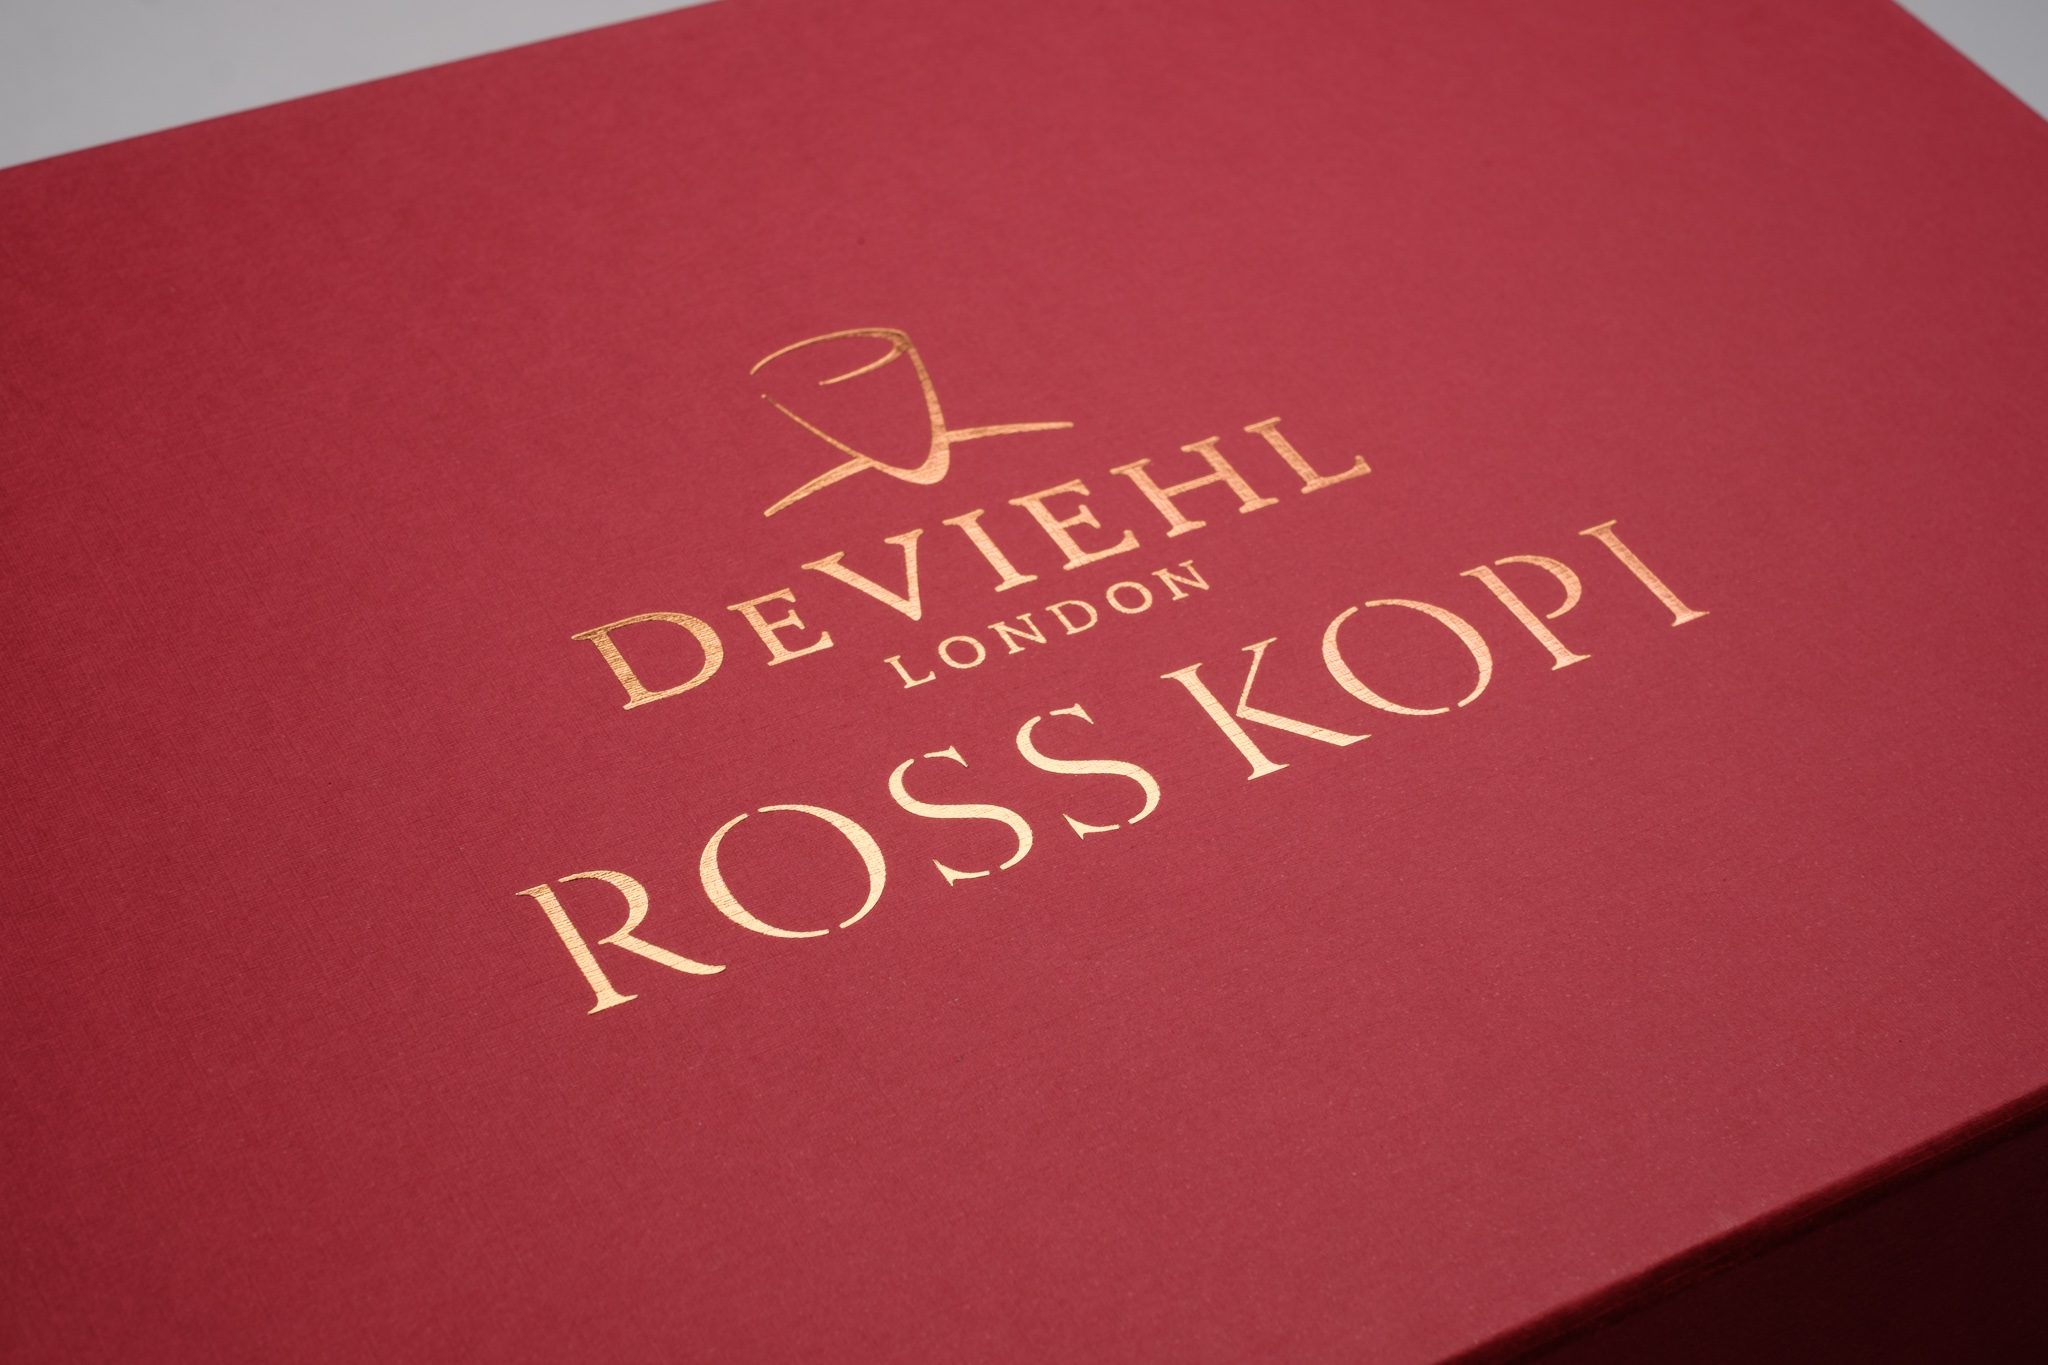 Deviehl & Ross Kopi packaging